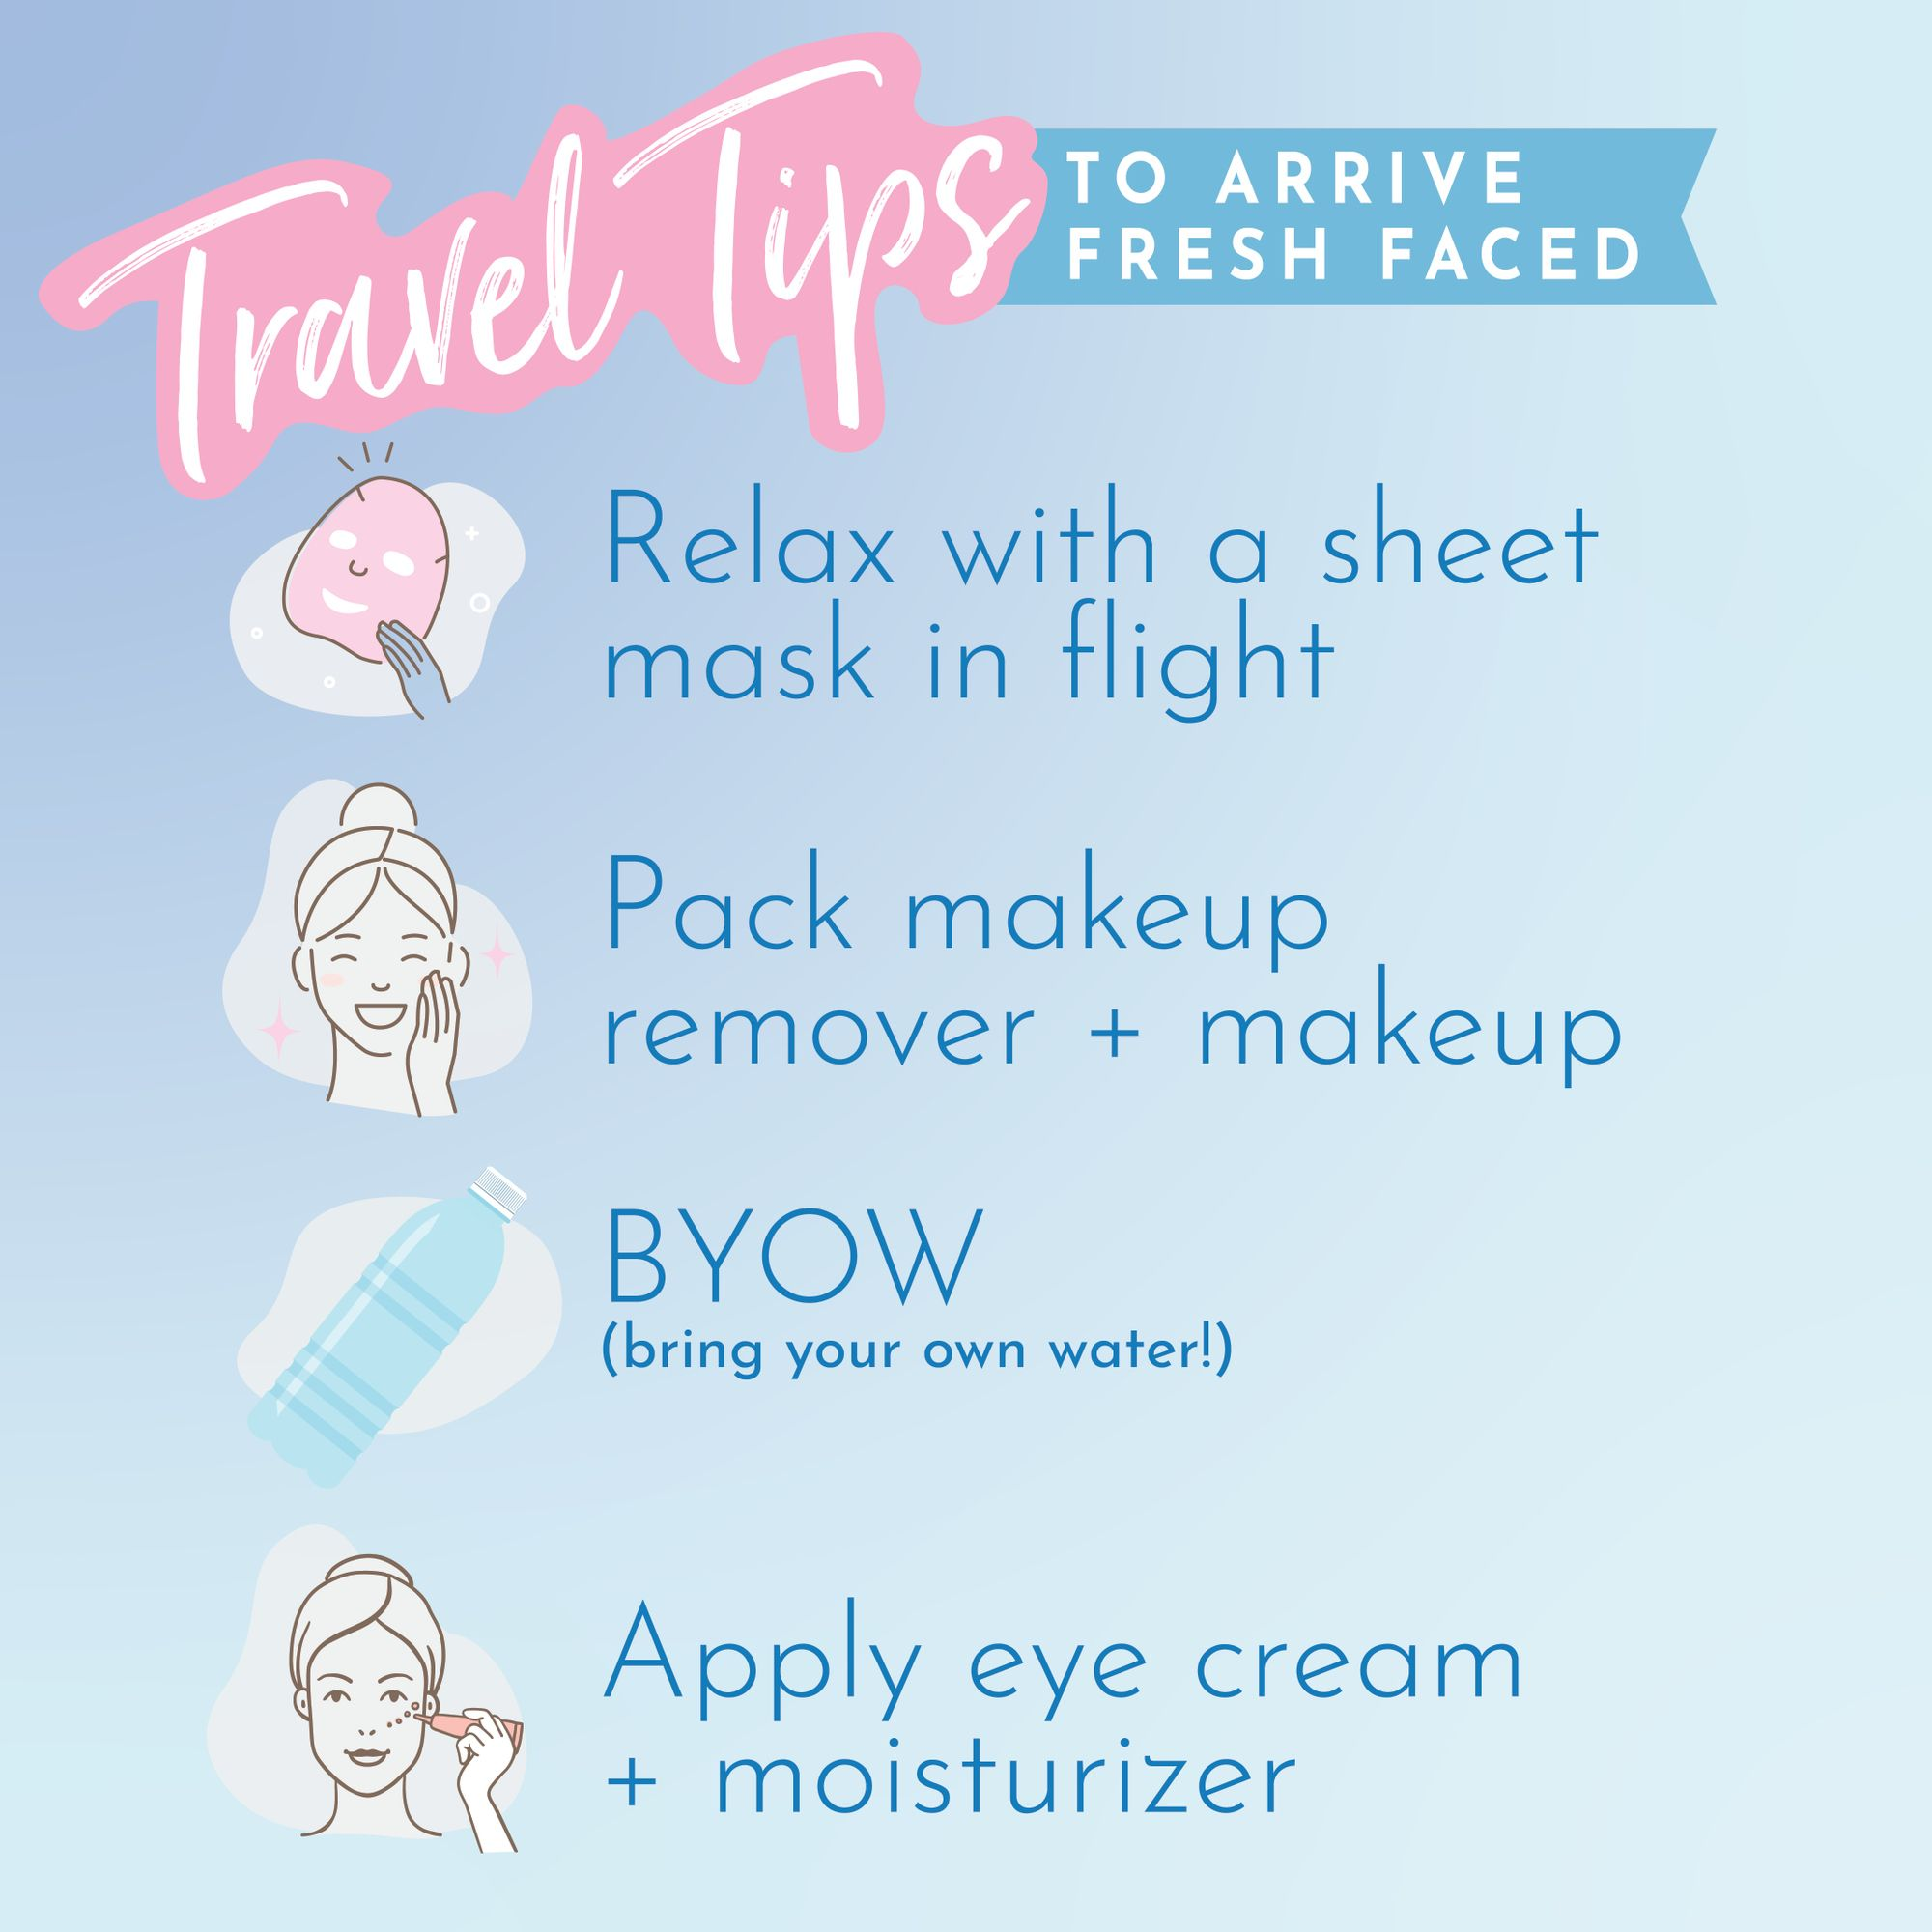 1111 Travel Tips To Arrive Fresh Faced 11. Relax with a sheet mask in